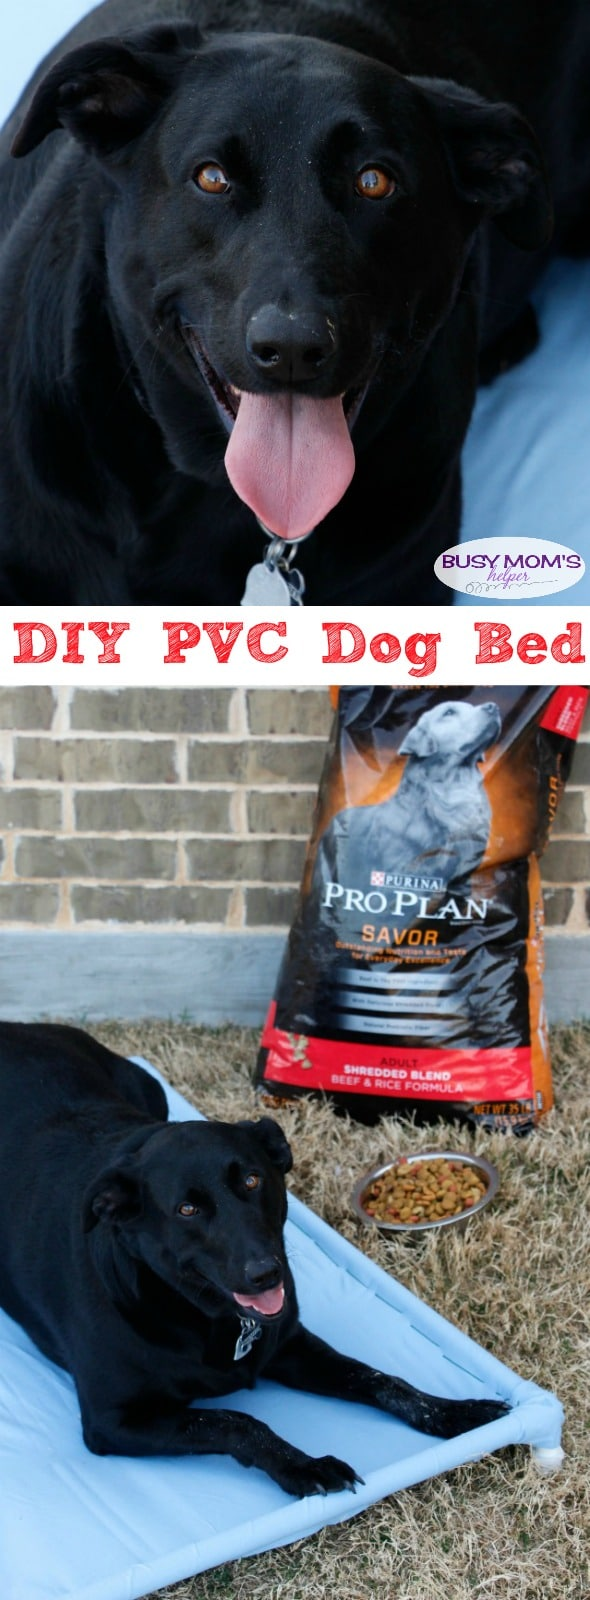 DIY PVC Dog Bed - Your pets will love this DIY PVC Dog Hammock Tutorial! #TheDogumentaries #ad